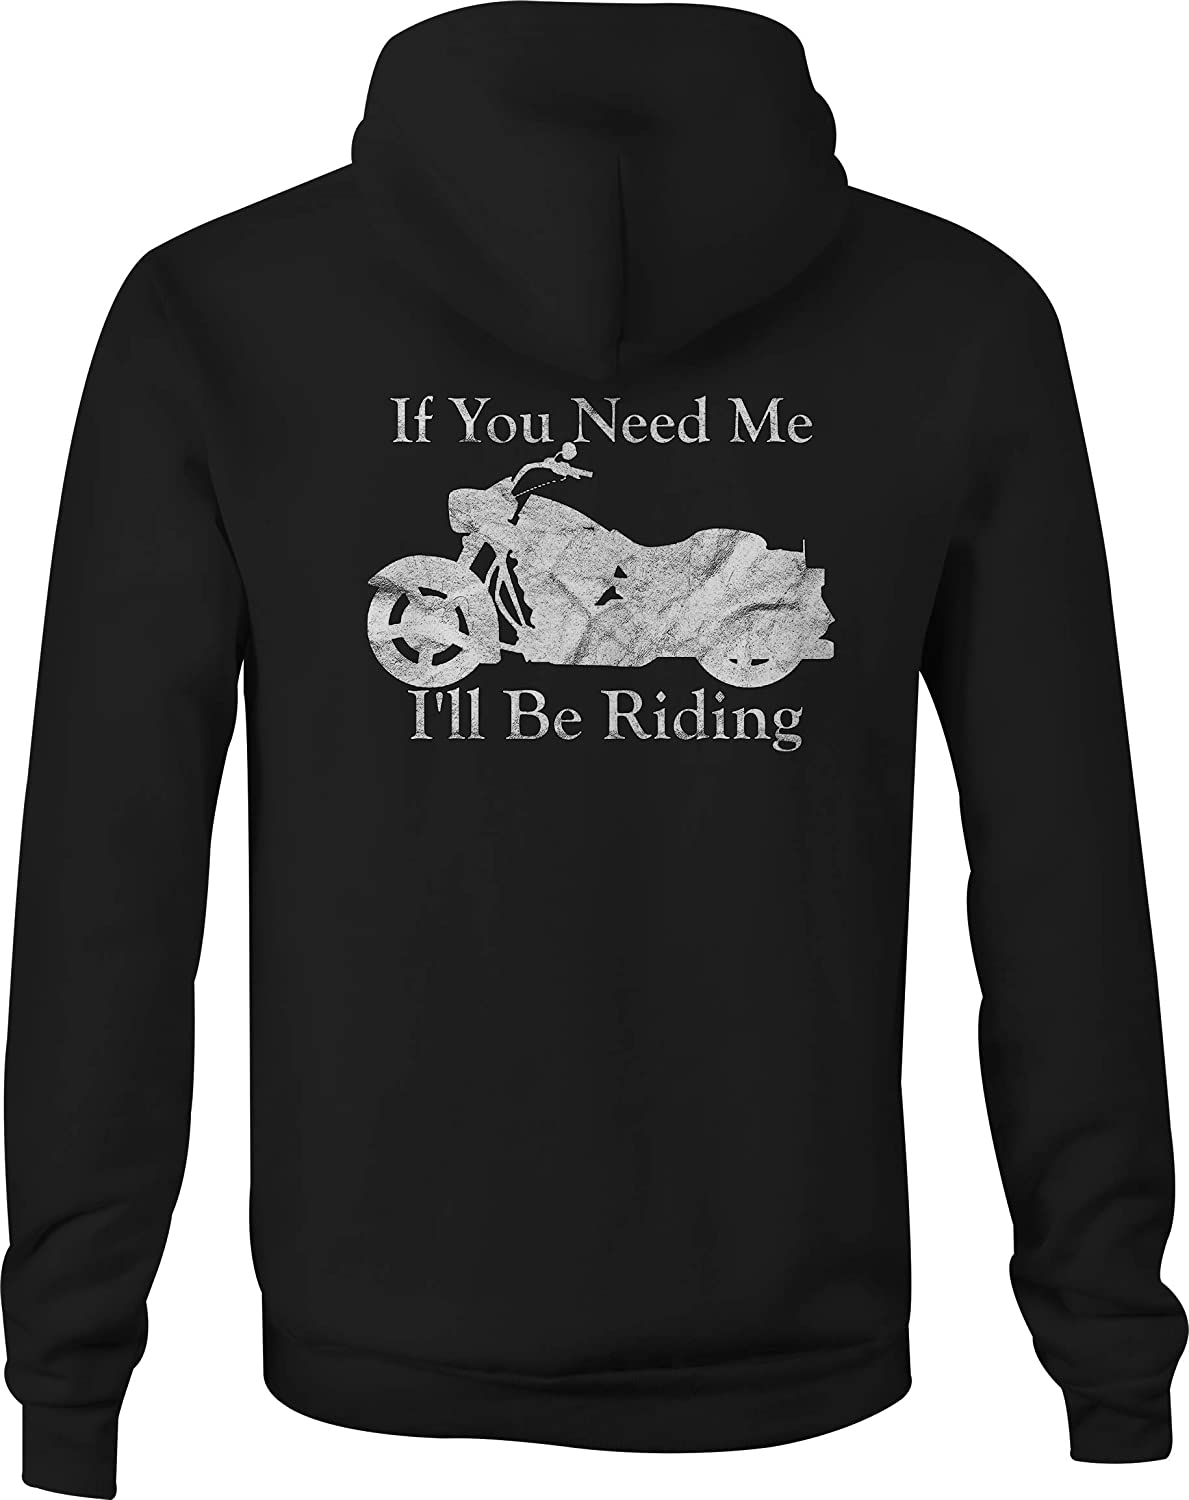 Motorcycle Zip Up Hoodie If You Need Me Ill be Riding Cruiser